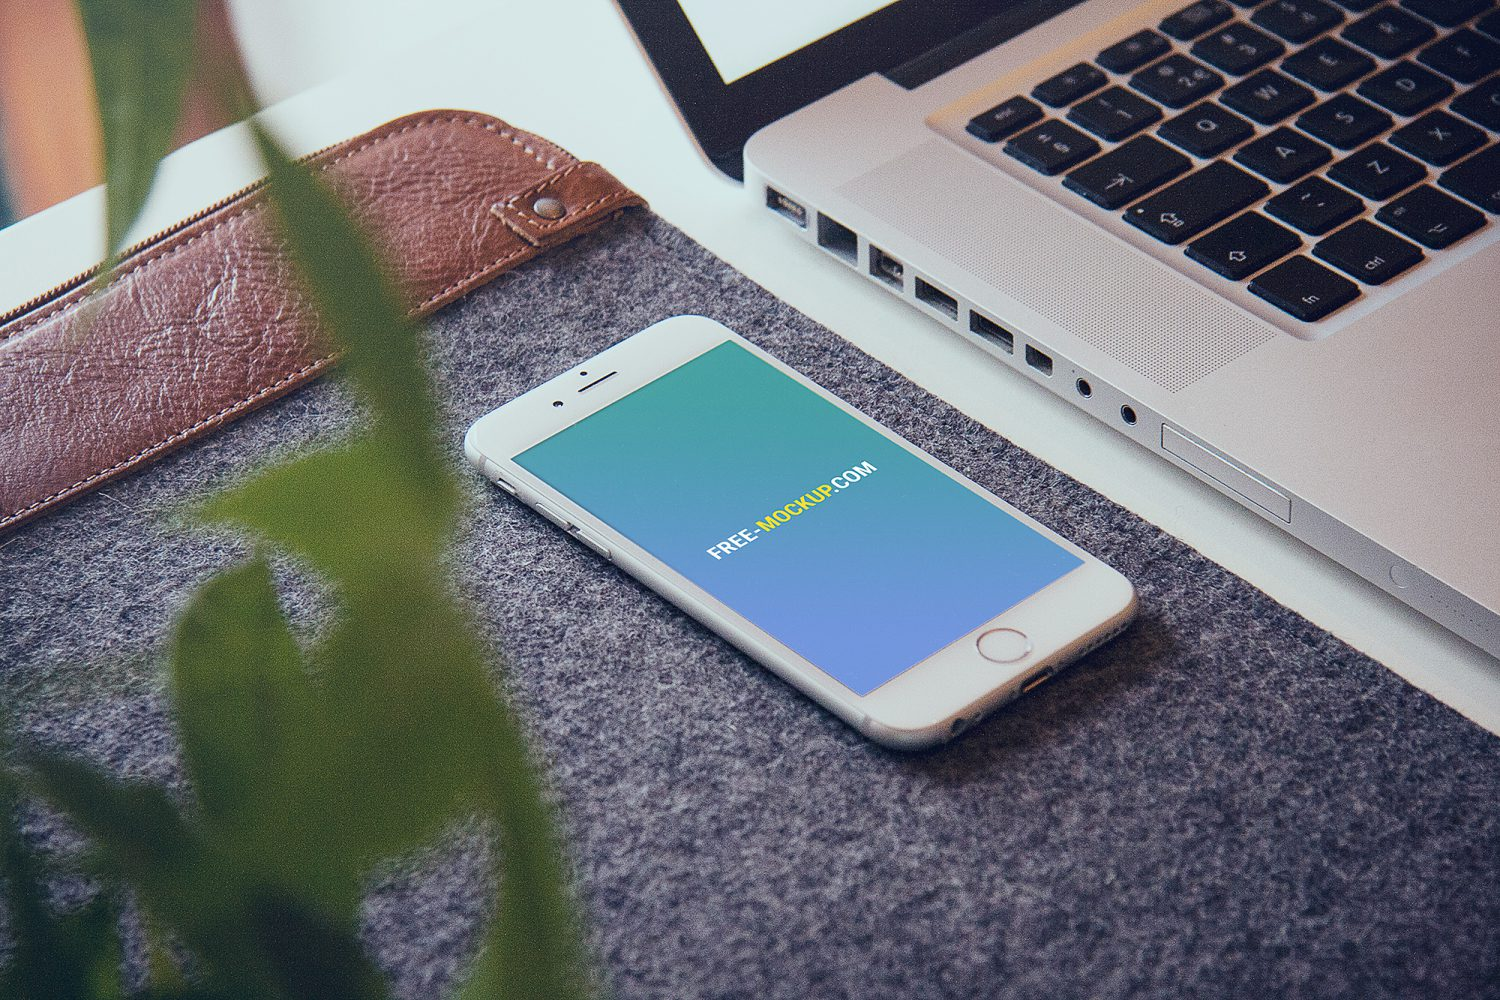 iPhone 6 Free Mockup. iPhone PSD Template